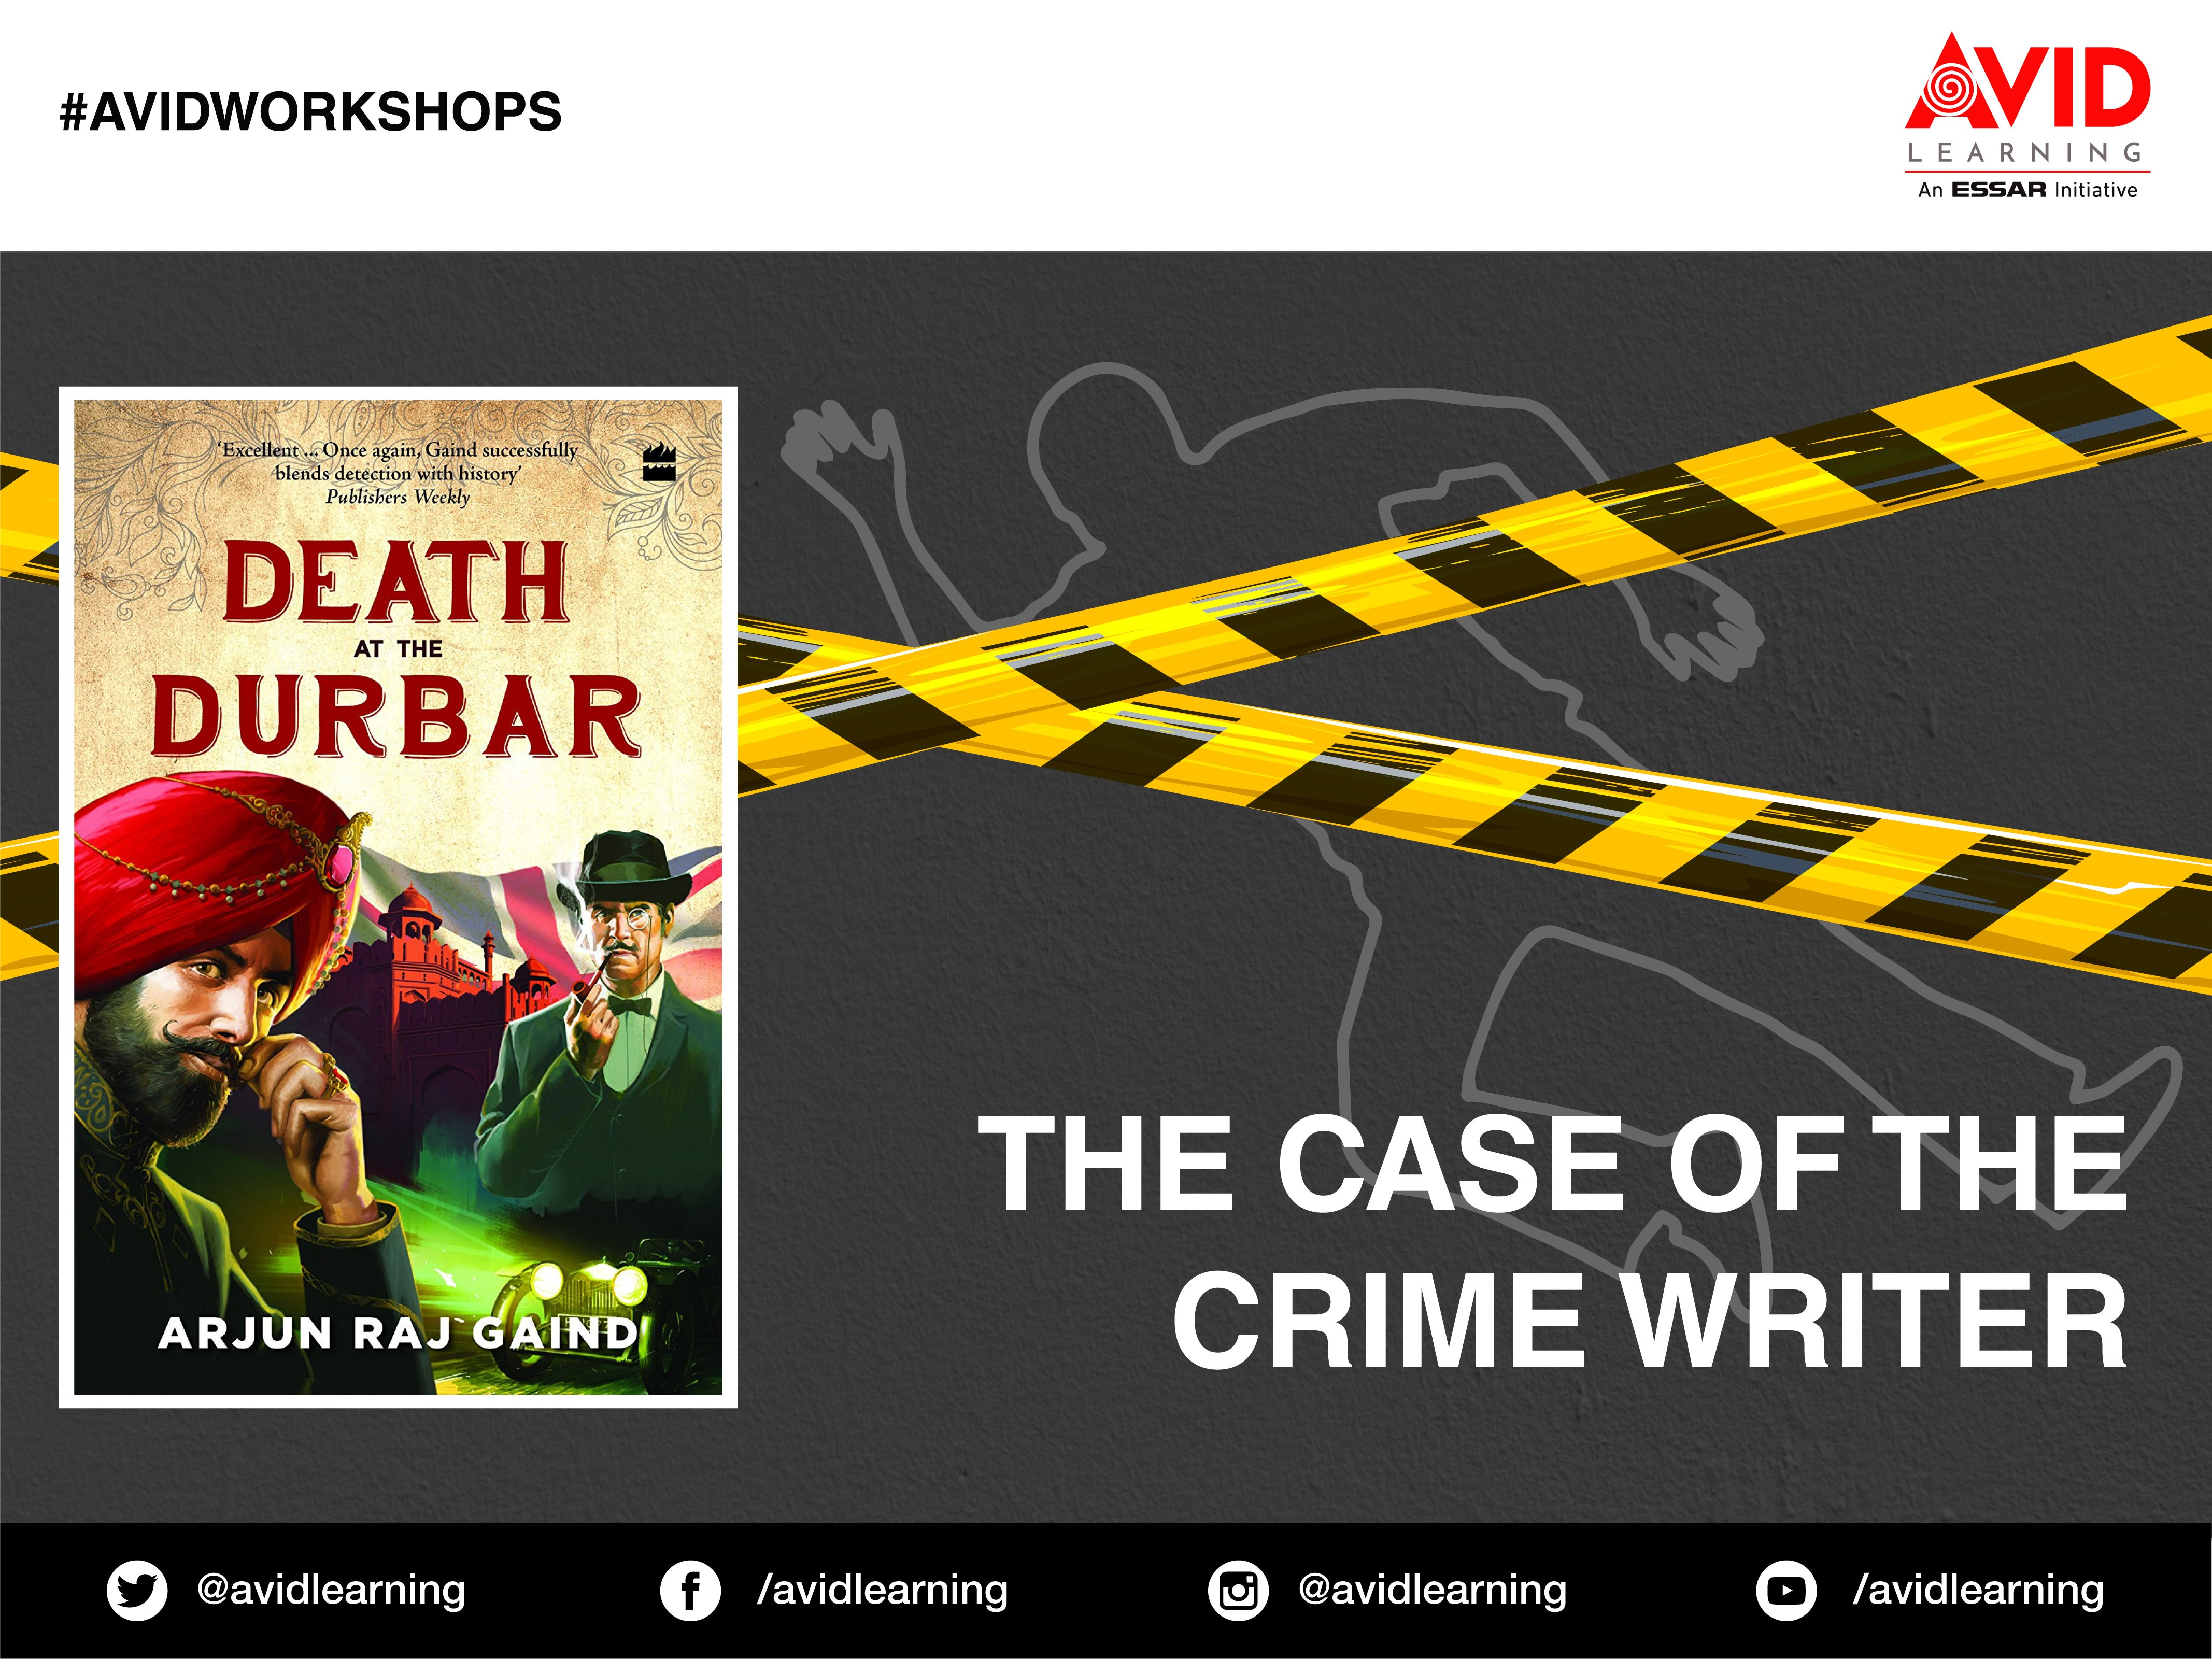 A138 - The Case of the Crime Writer: A Workshop